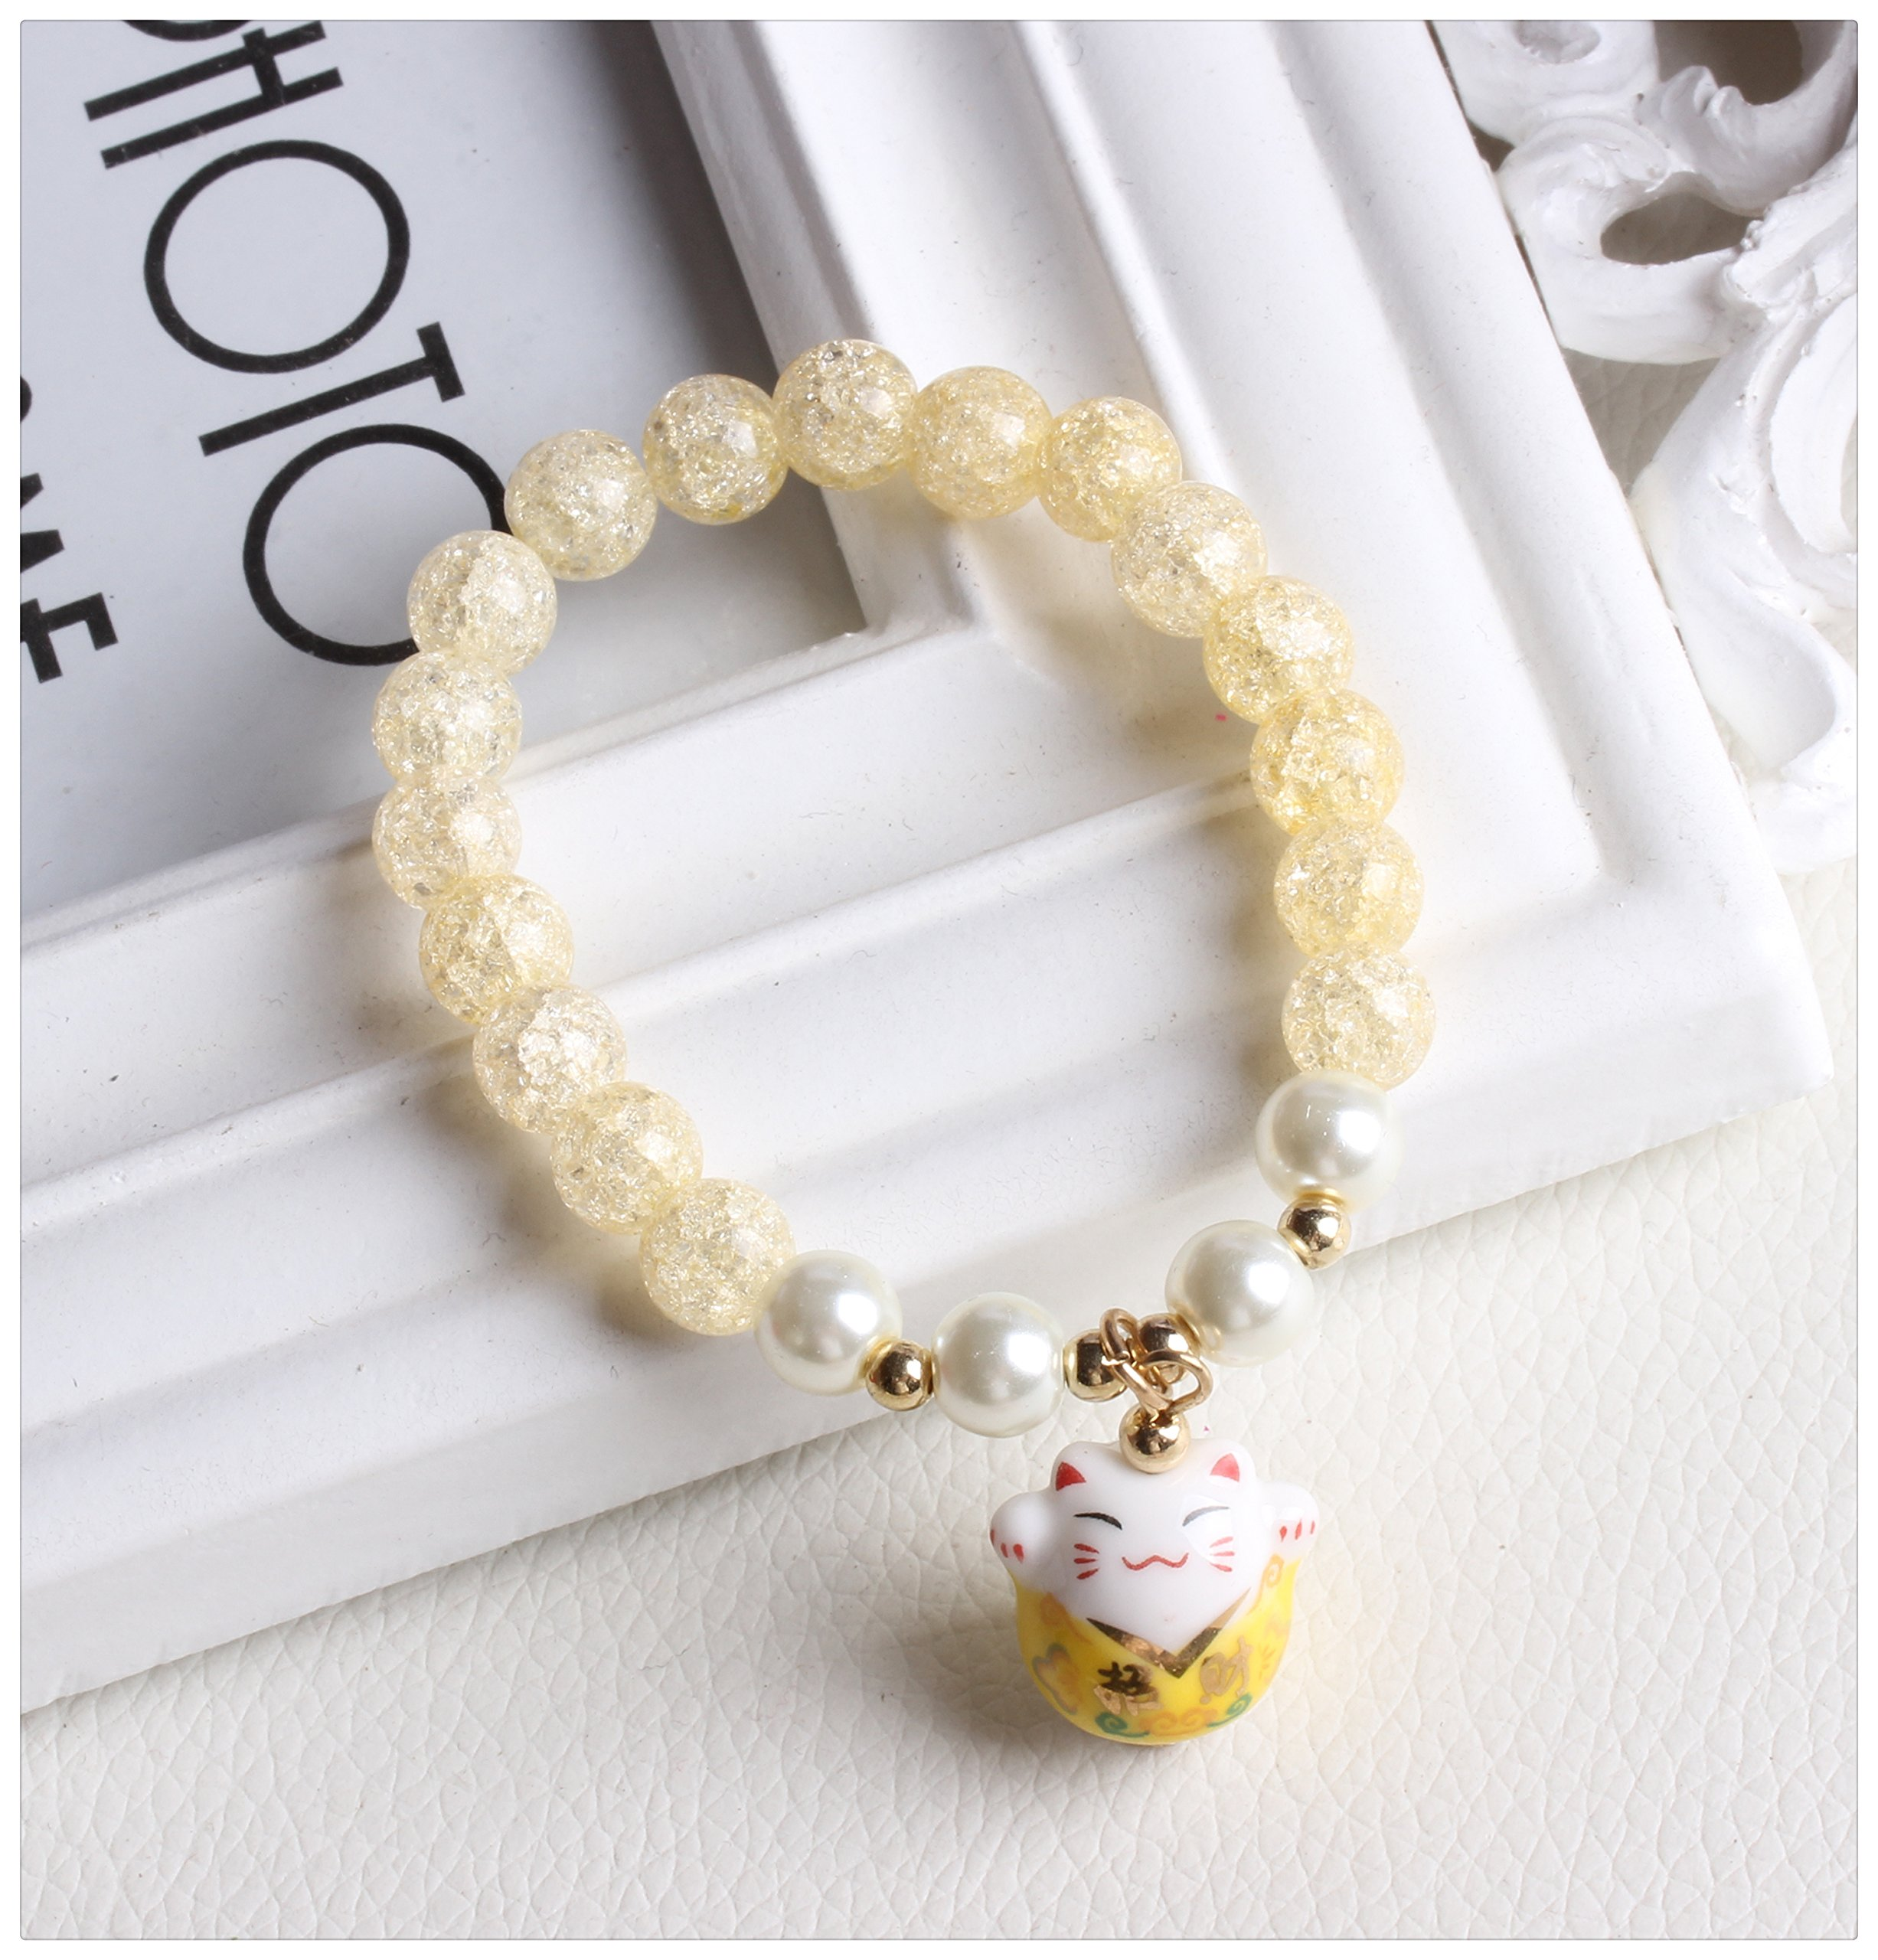 DreamMarker Ice Crack Crystal Korean Style Charm Bracelet with a Fortune & Lucky Cat Pendant (Yellow)